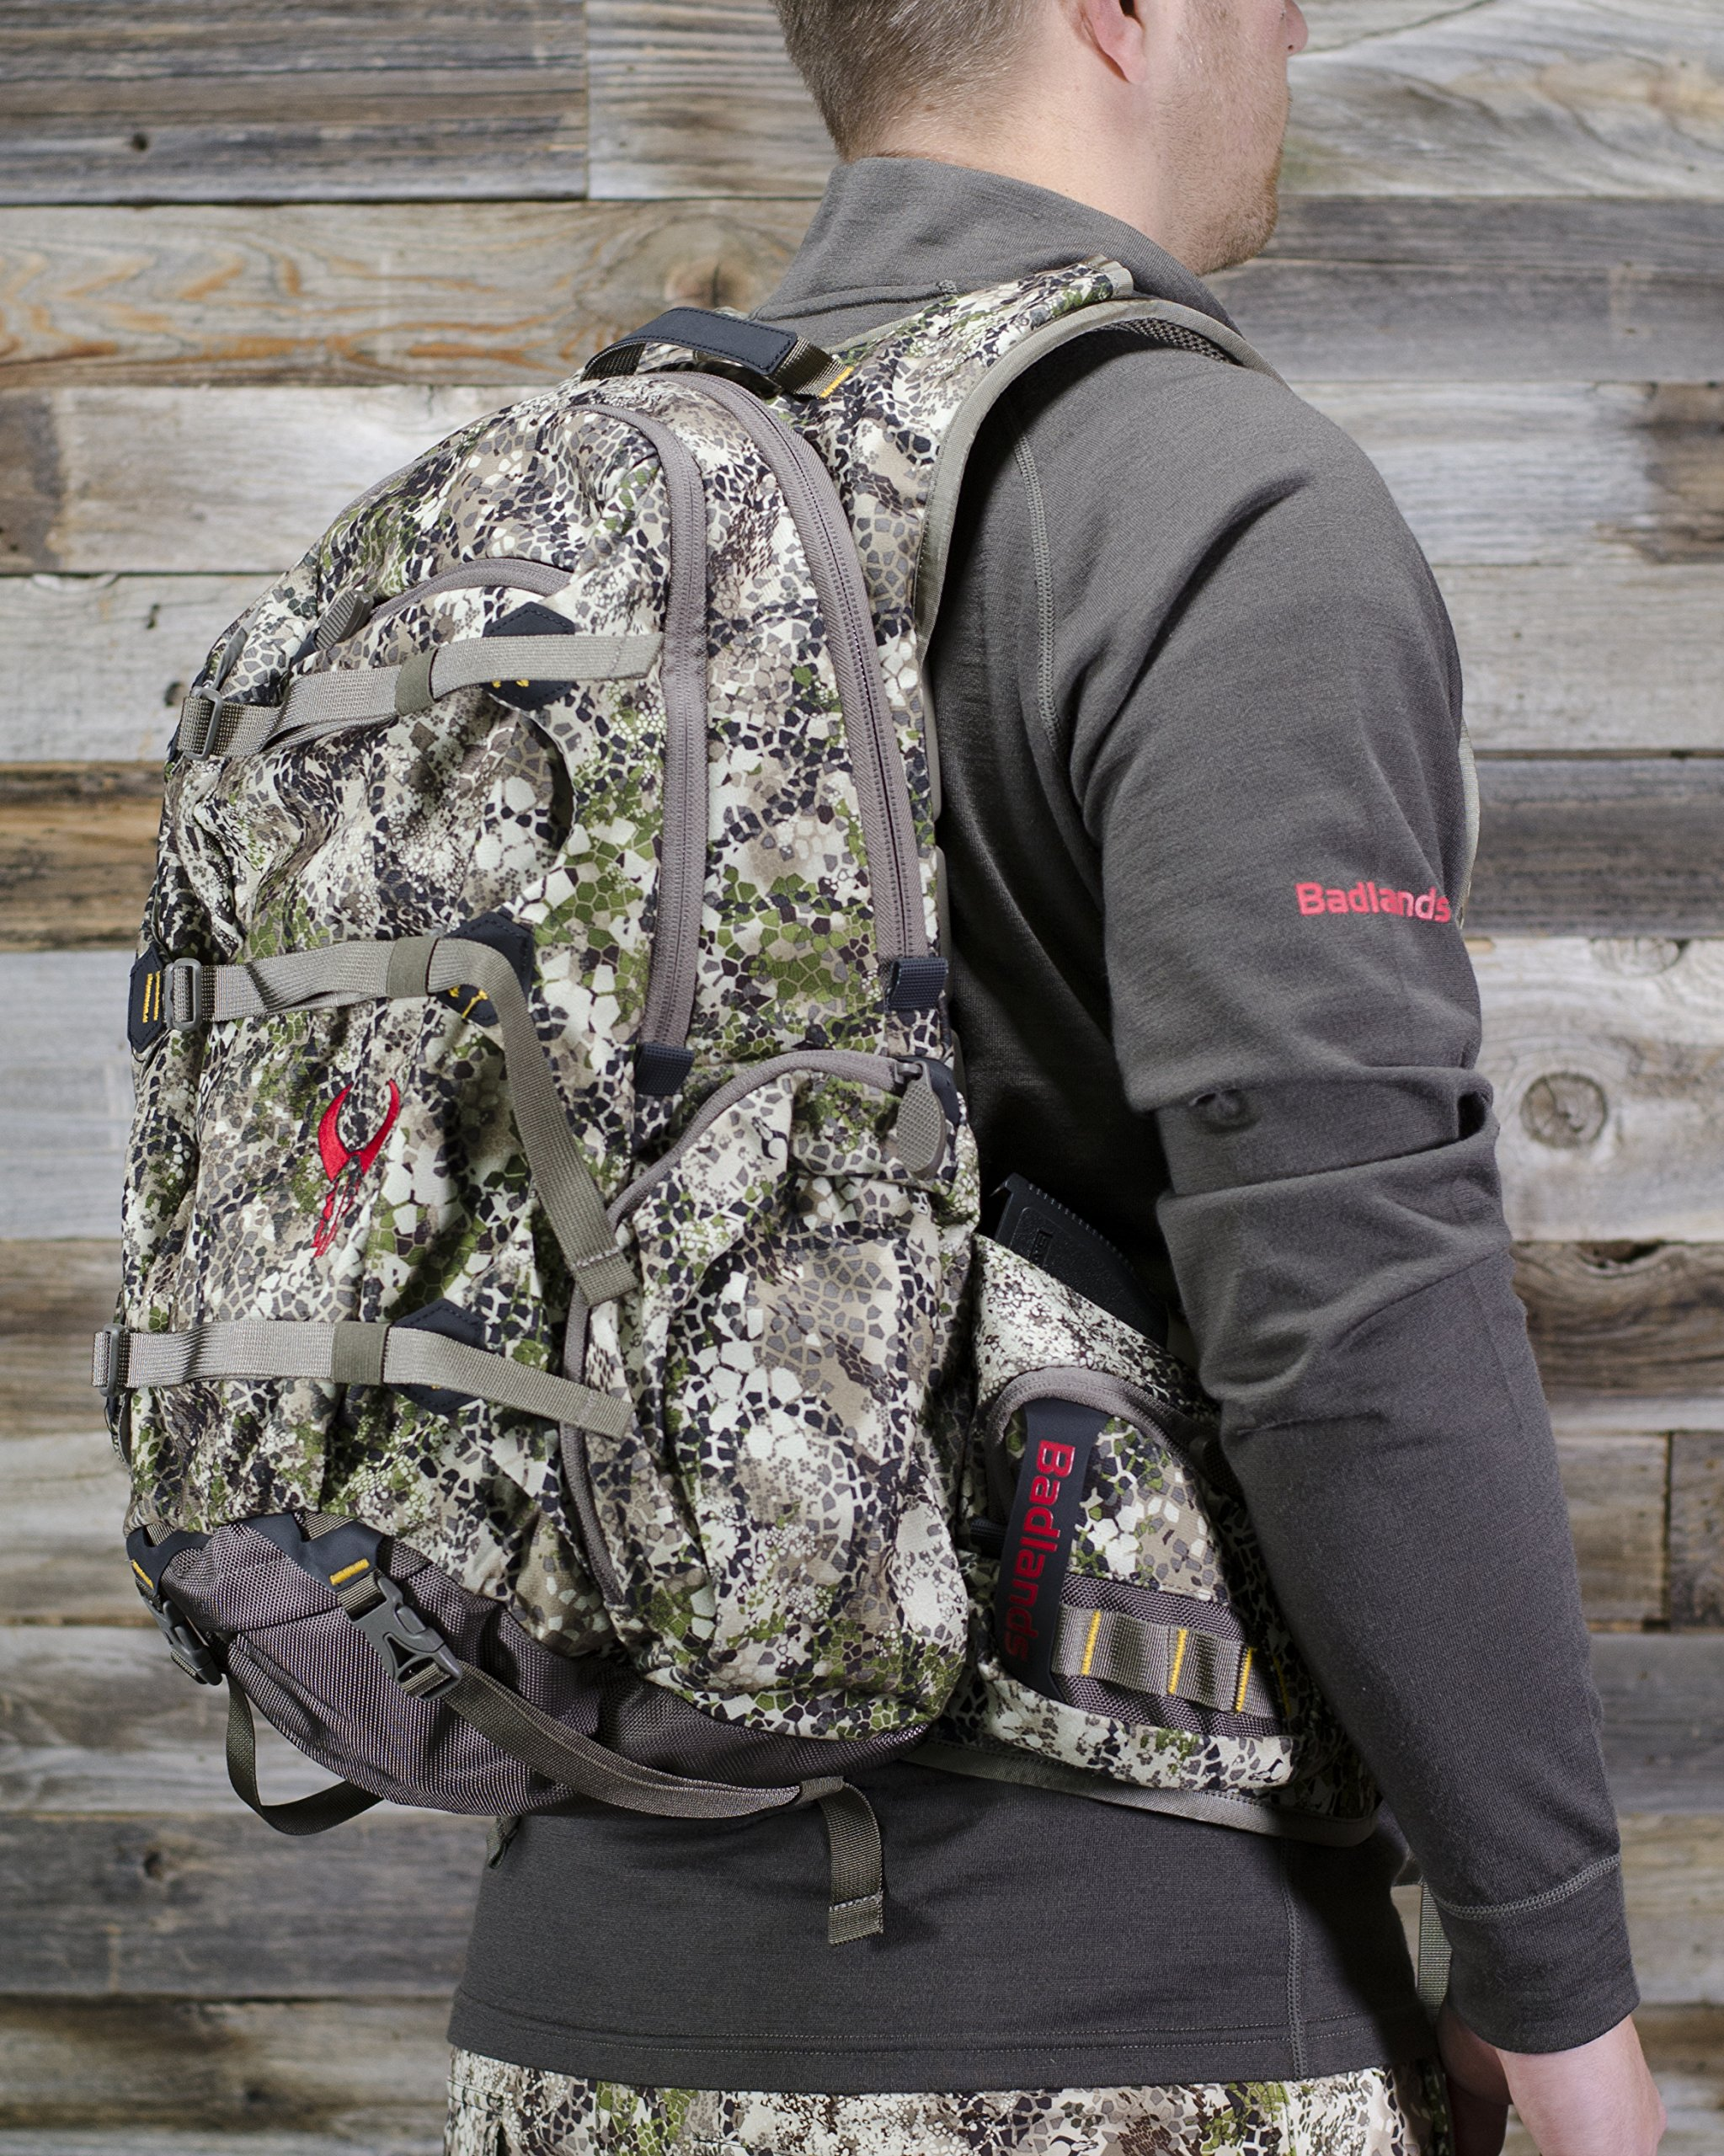 Badlands Superday Camouflage Hunting Backpack - Bow, Rifle, and Pistol Compatible, Approach Camo by Badlands (Image #4)